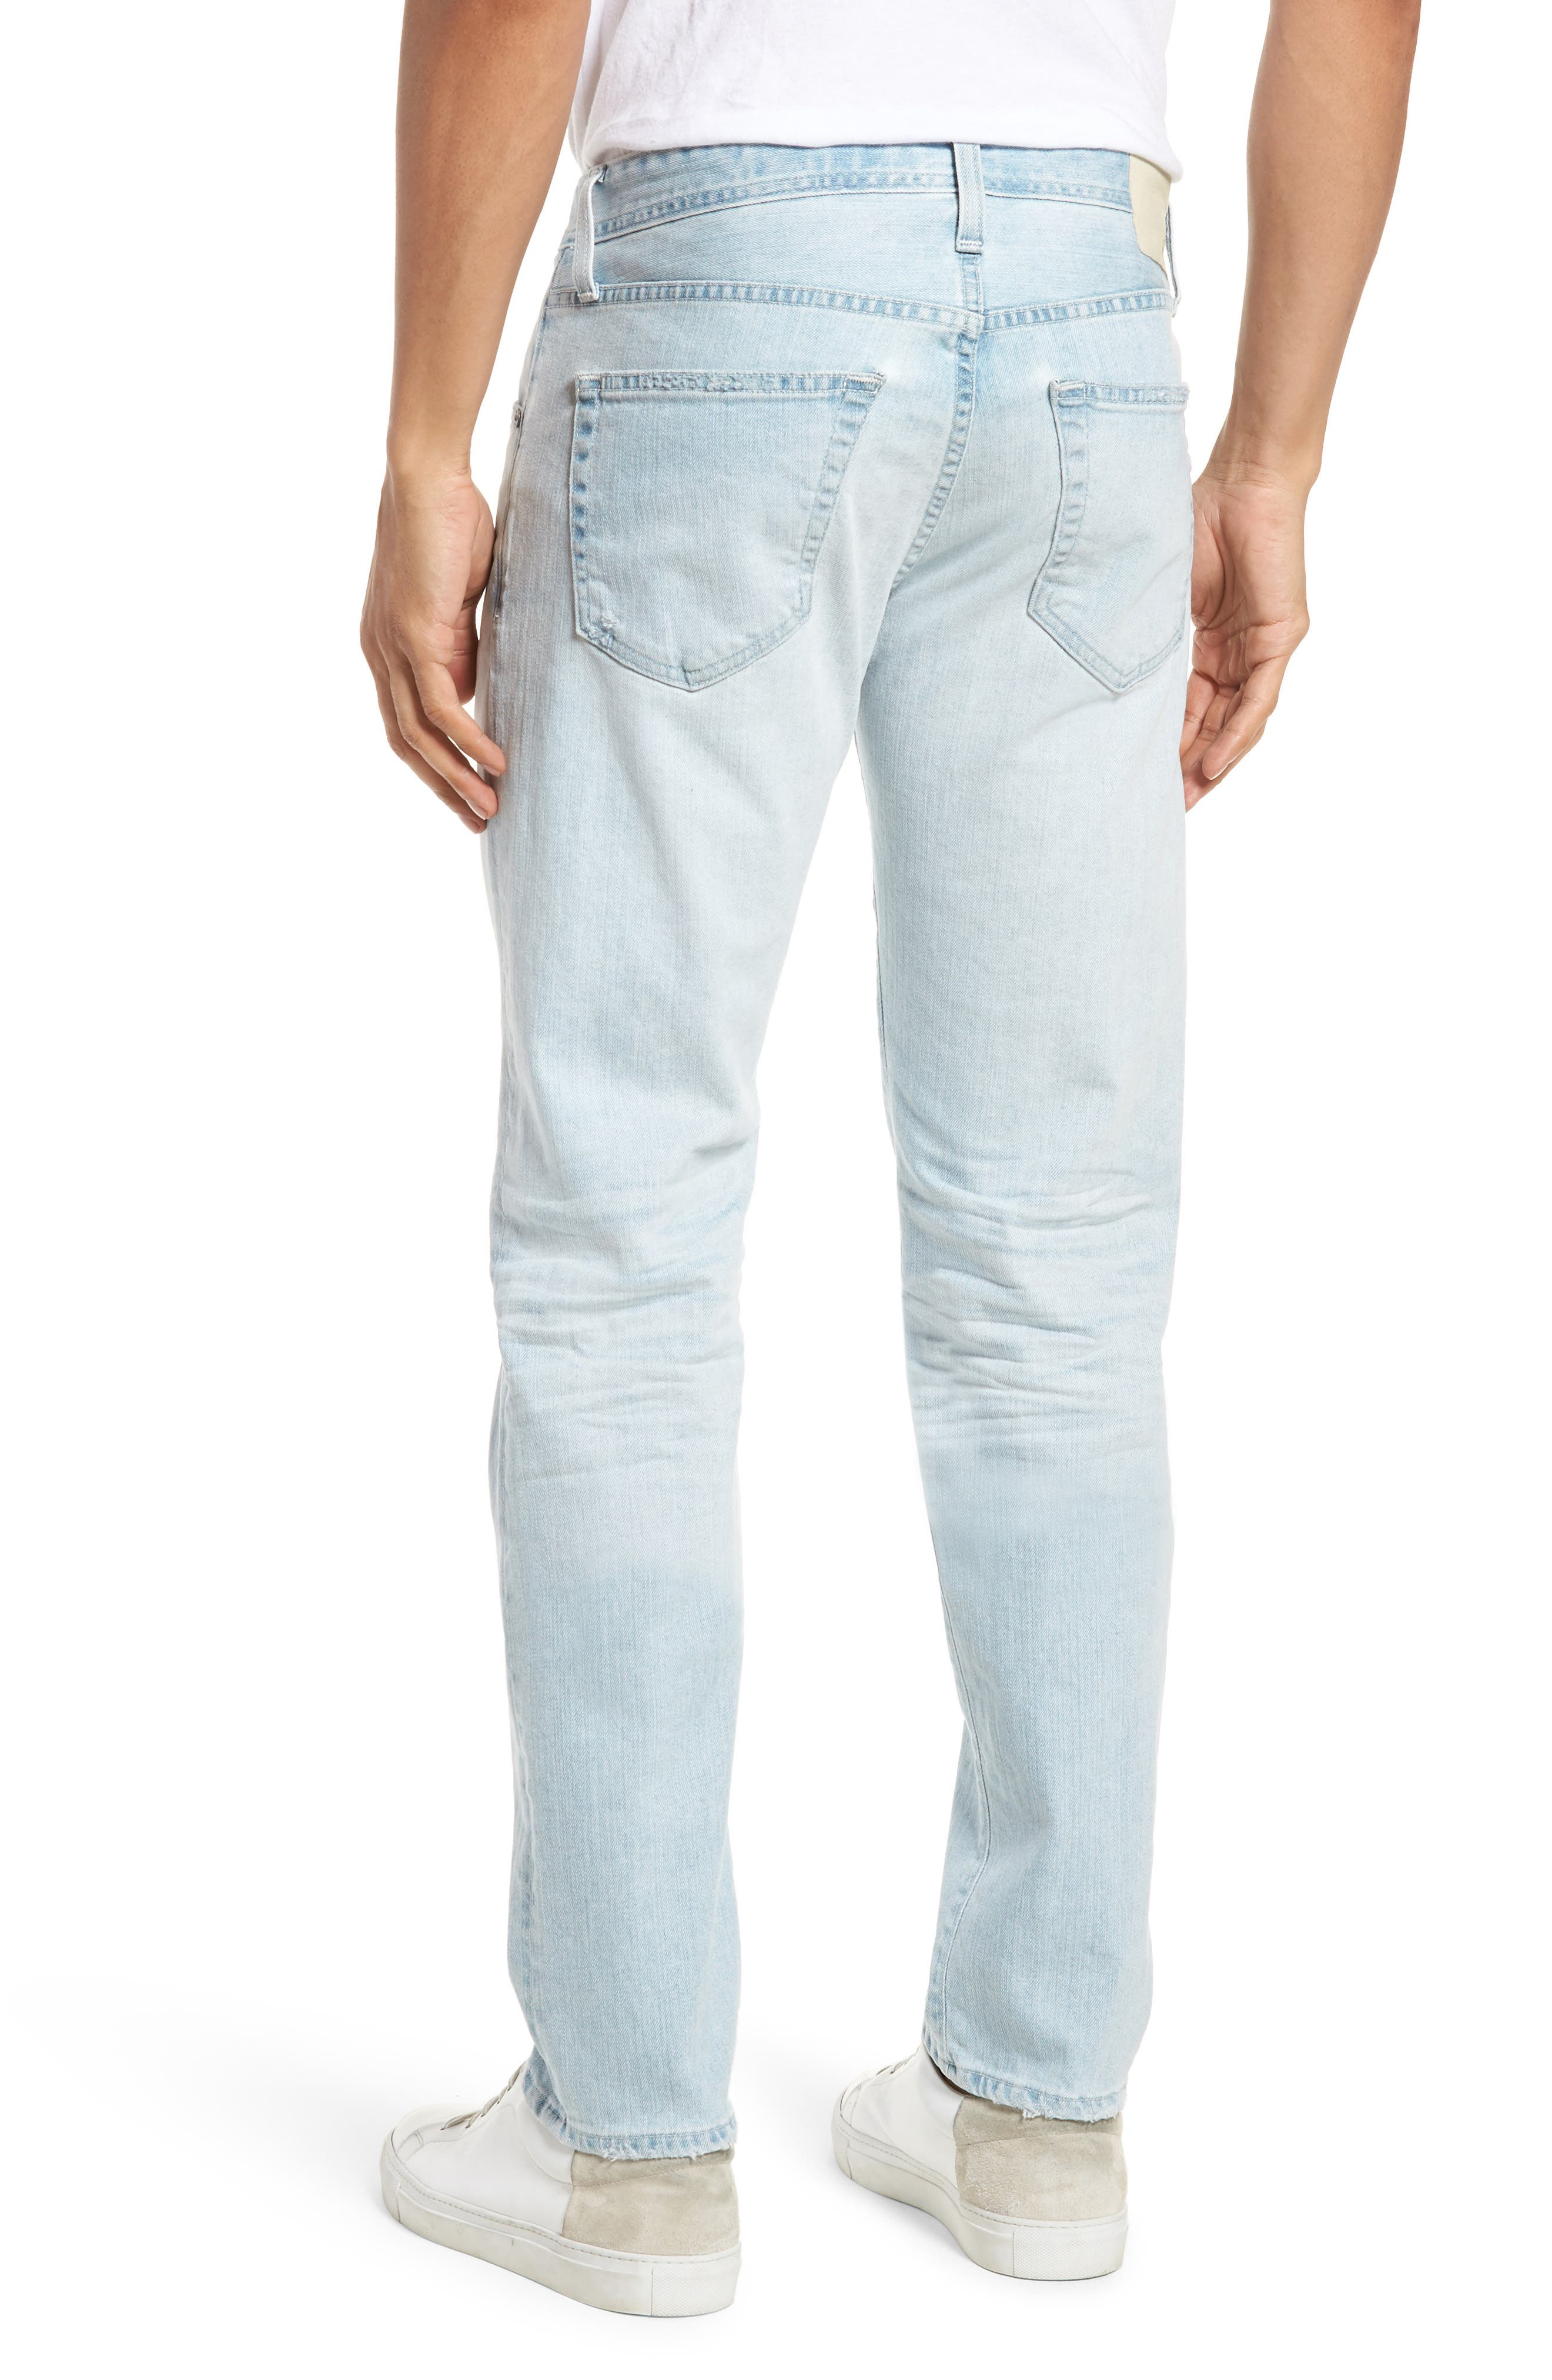 Tellis Slim Fit Jeans,                             Alternate thumbnail 2, color,                             400